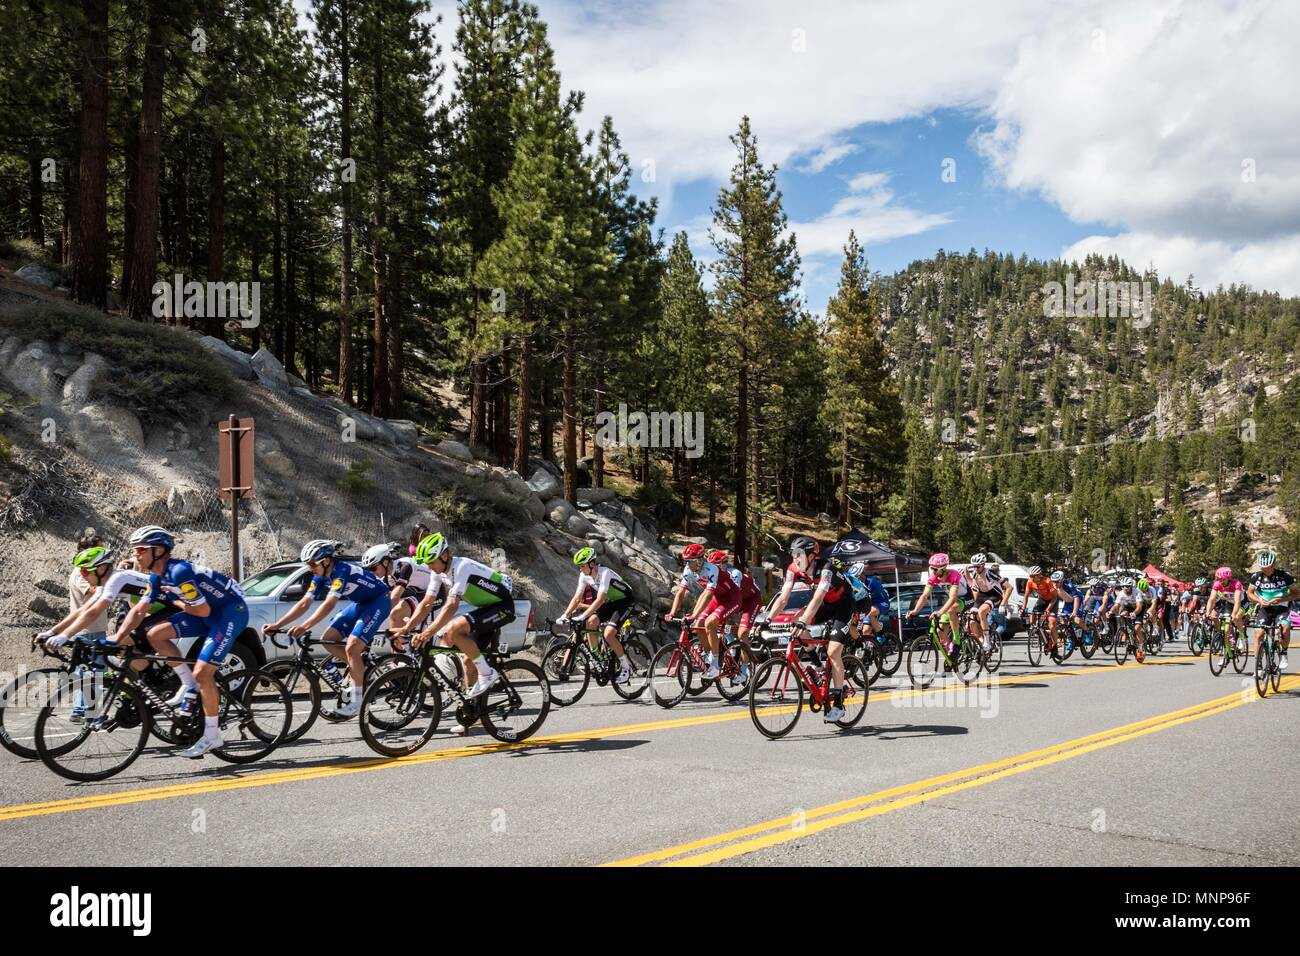 Nevada, USA. 18th May, 2018. A group of riders approach Daggett Summitt, 7334 ft, along Kingsbury Grade Rd., Nevada, near South Lake Tahoe, during Stage 6 of Amgen Tour of California on Friday, May 18, 2018. Credit: Tracy Barbutes/ZUMA Wire/Alamy Live News - Stock Image